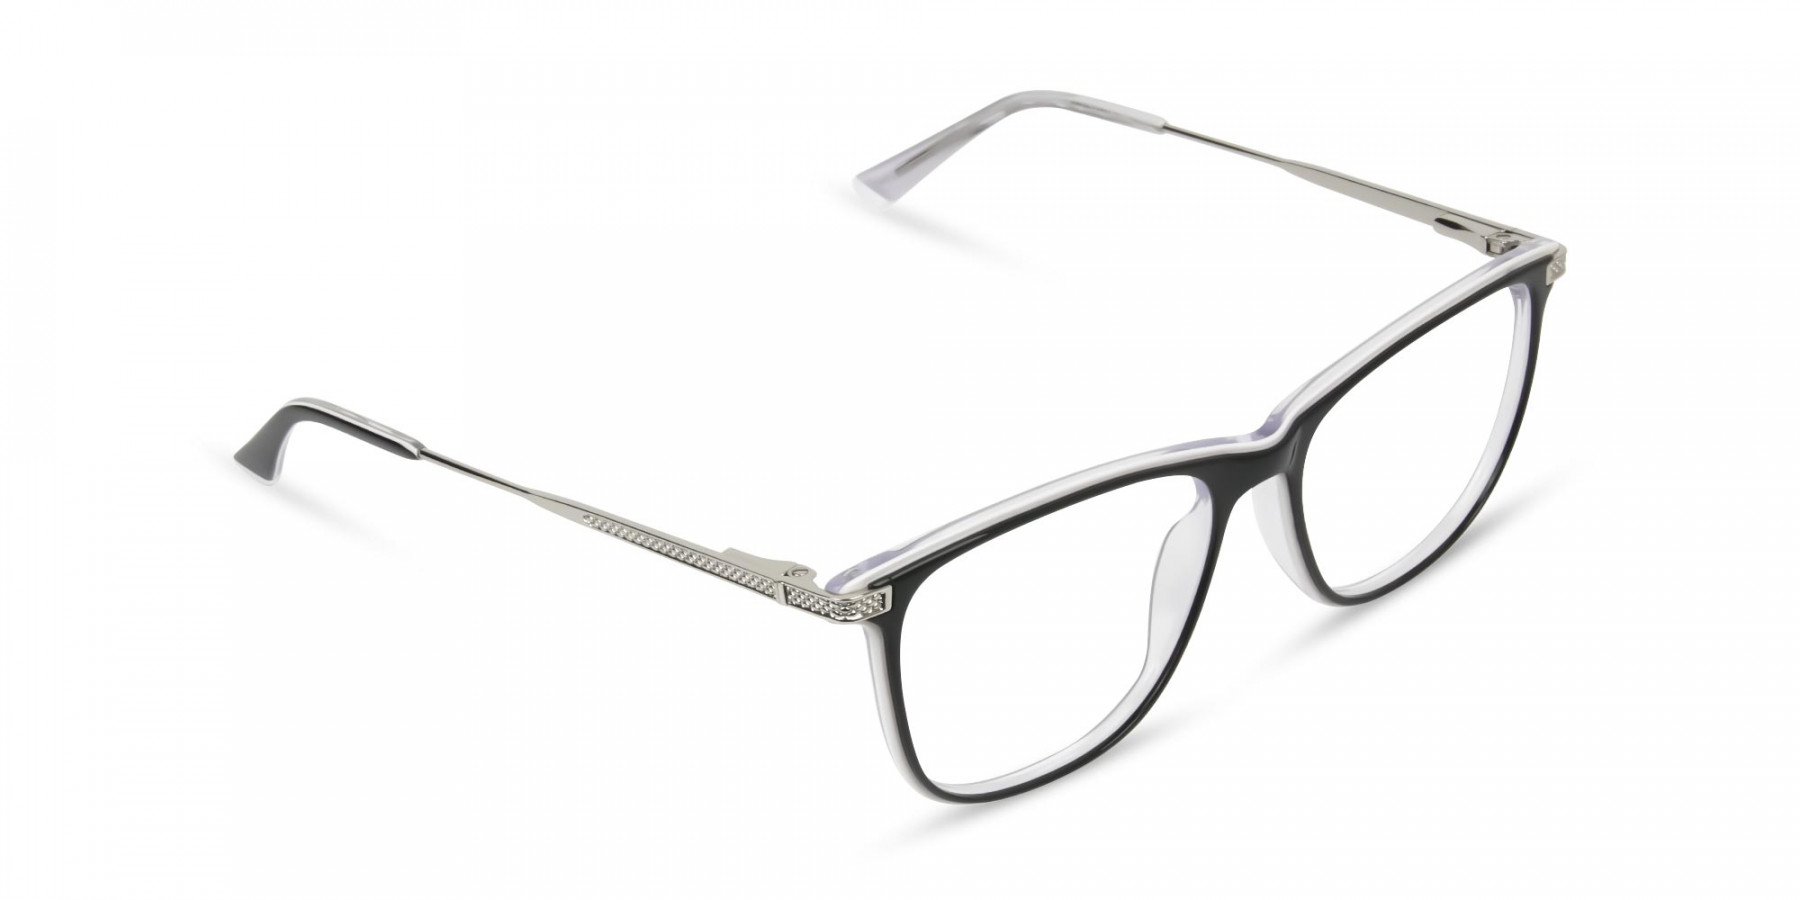 Black-and-White-Rectangular-Wayfarer-Glasses - 1